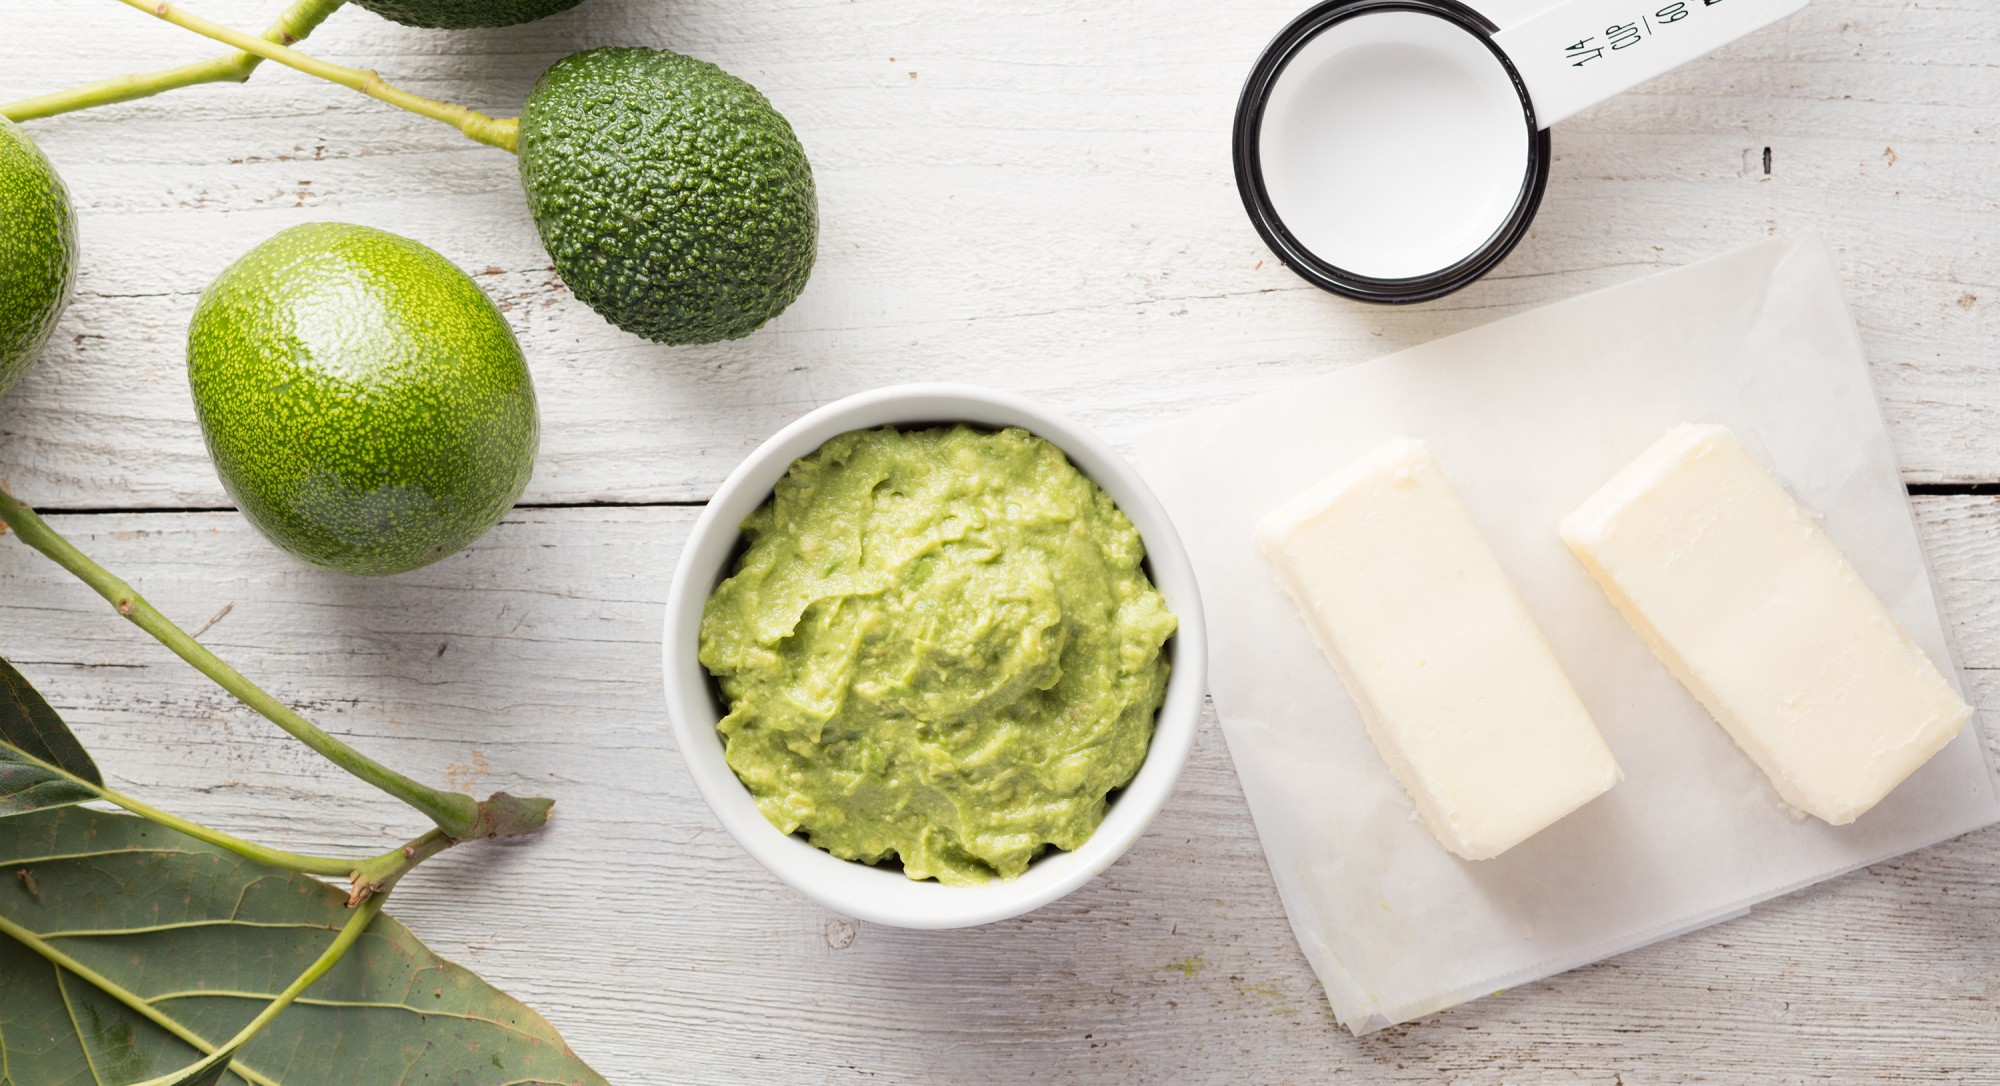 ICYMI: Baking With Avocado and the Latest Trendy Health Drink